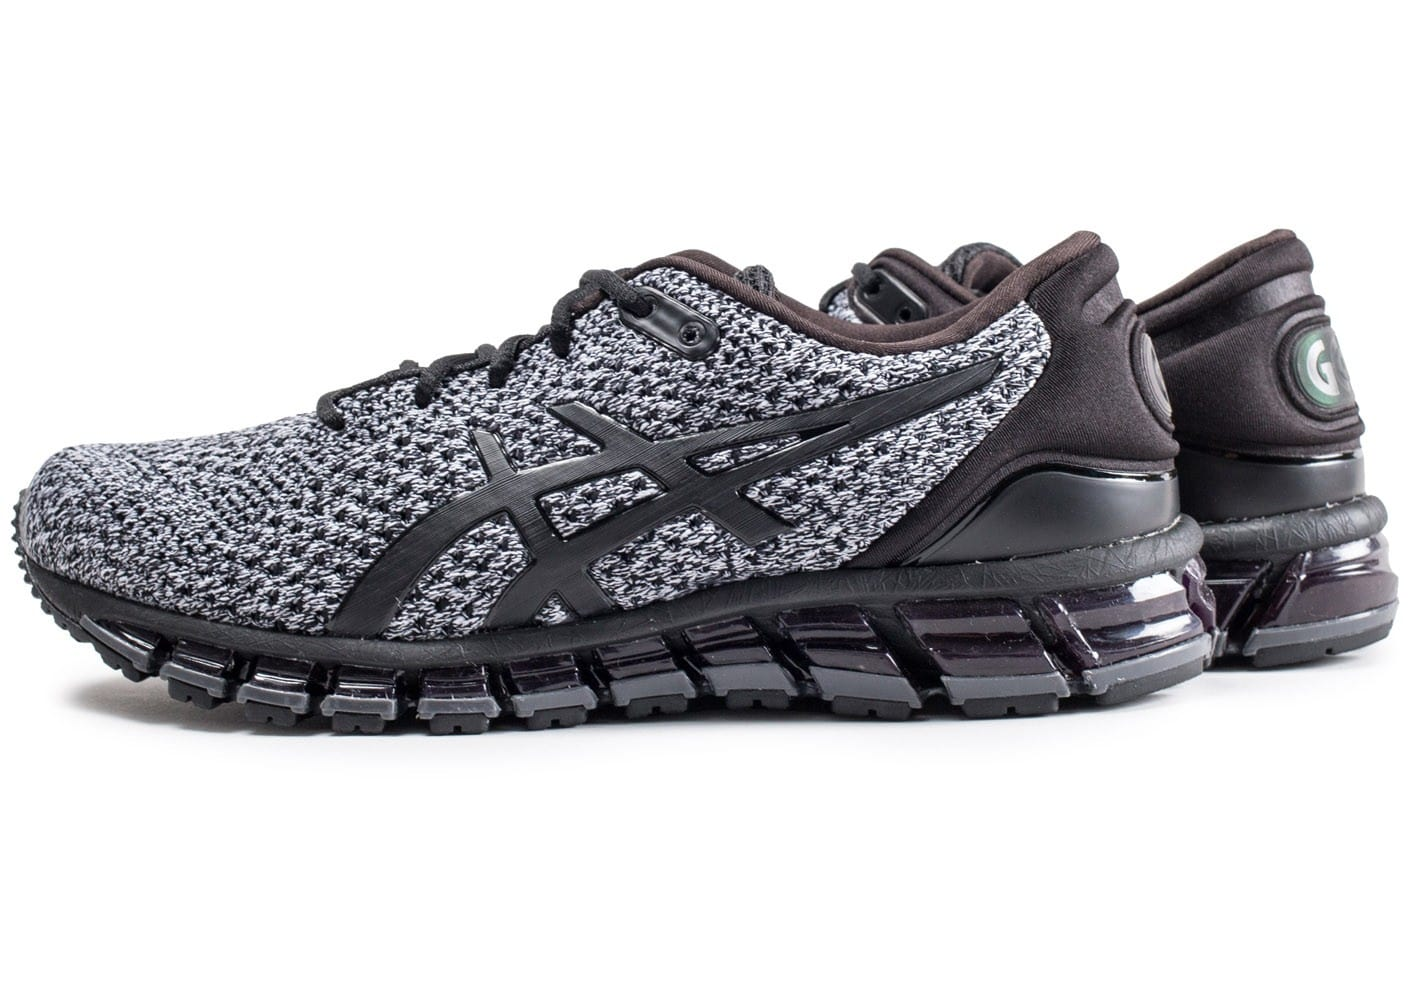 asics quantum 360 oreo cookies chaussures homme chausport. Black Bedroom Furniture Sets. Home Design Ideas